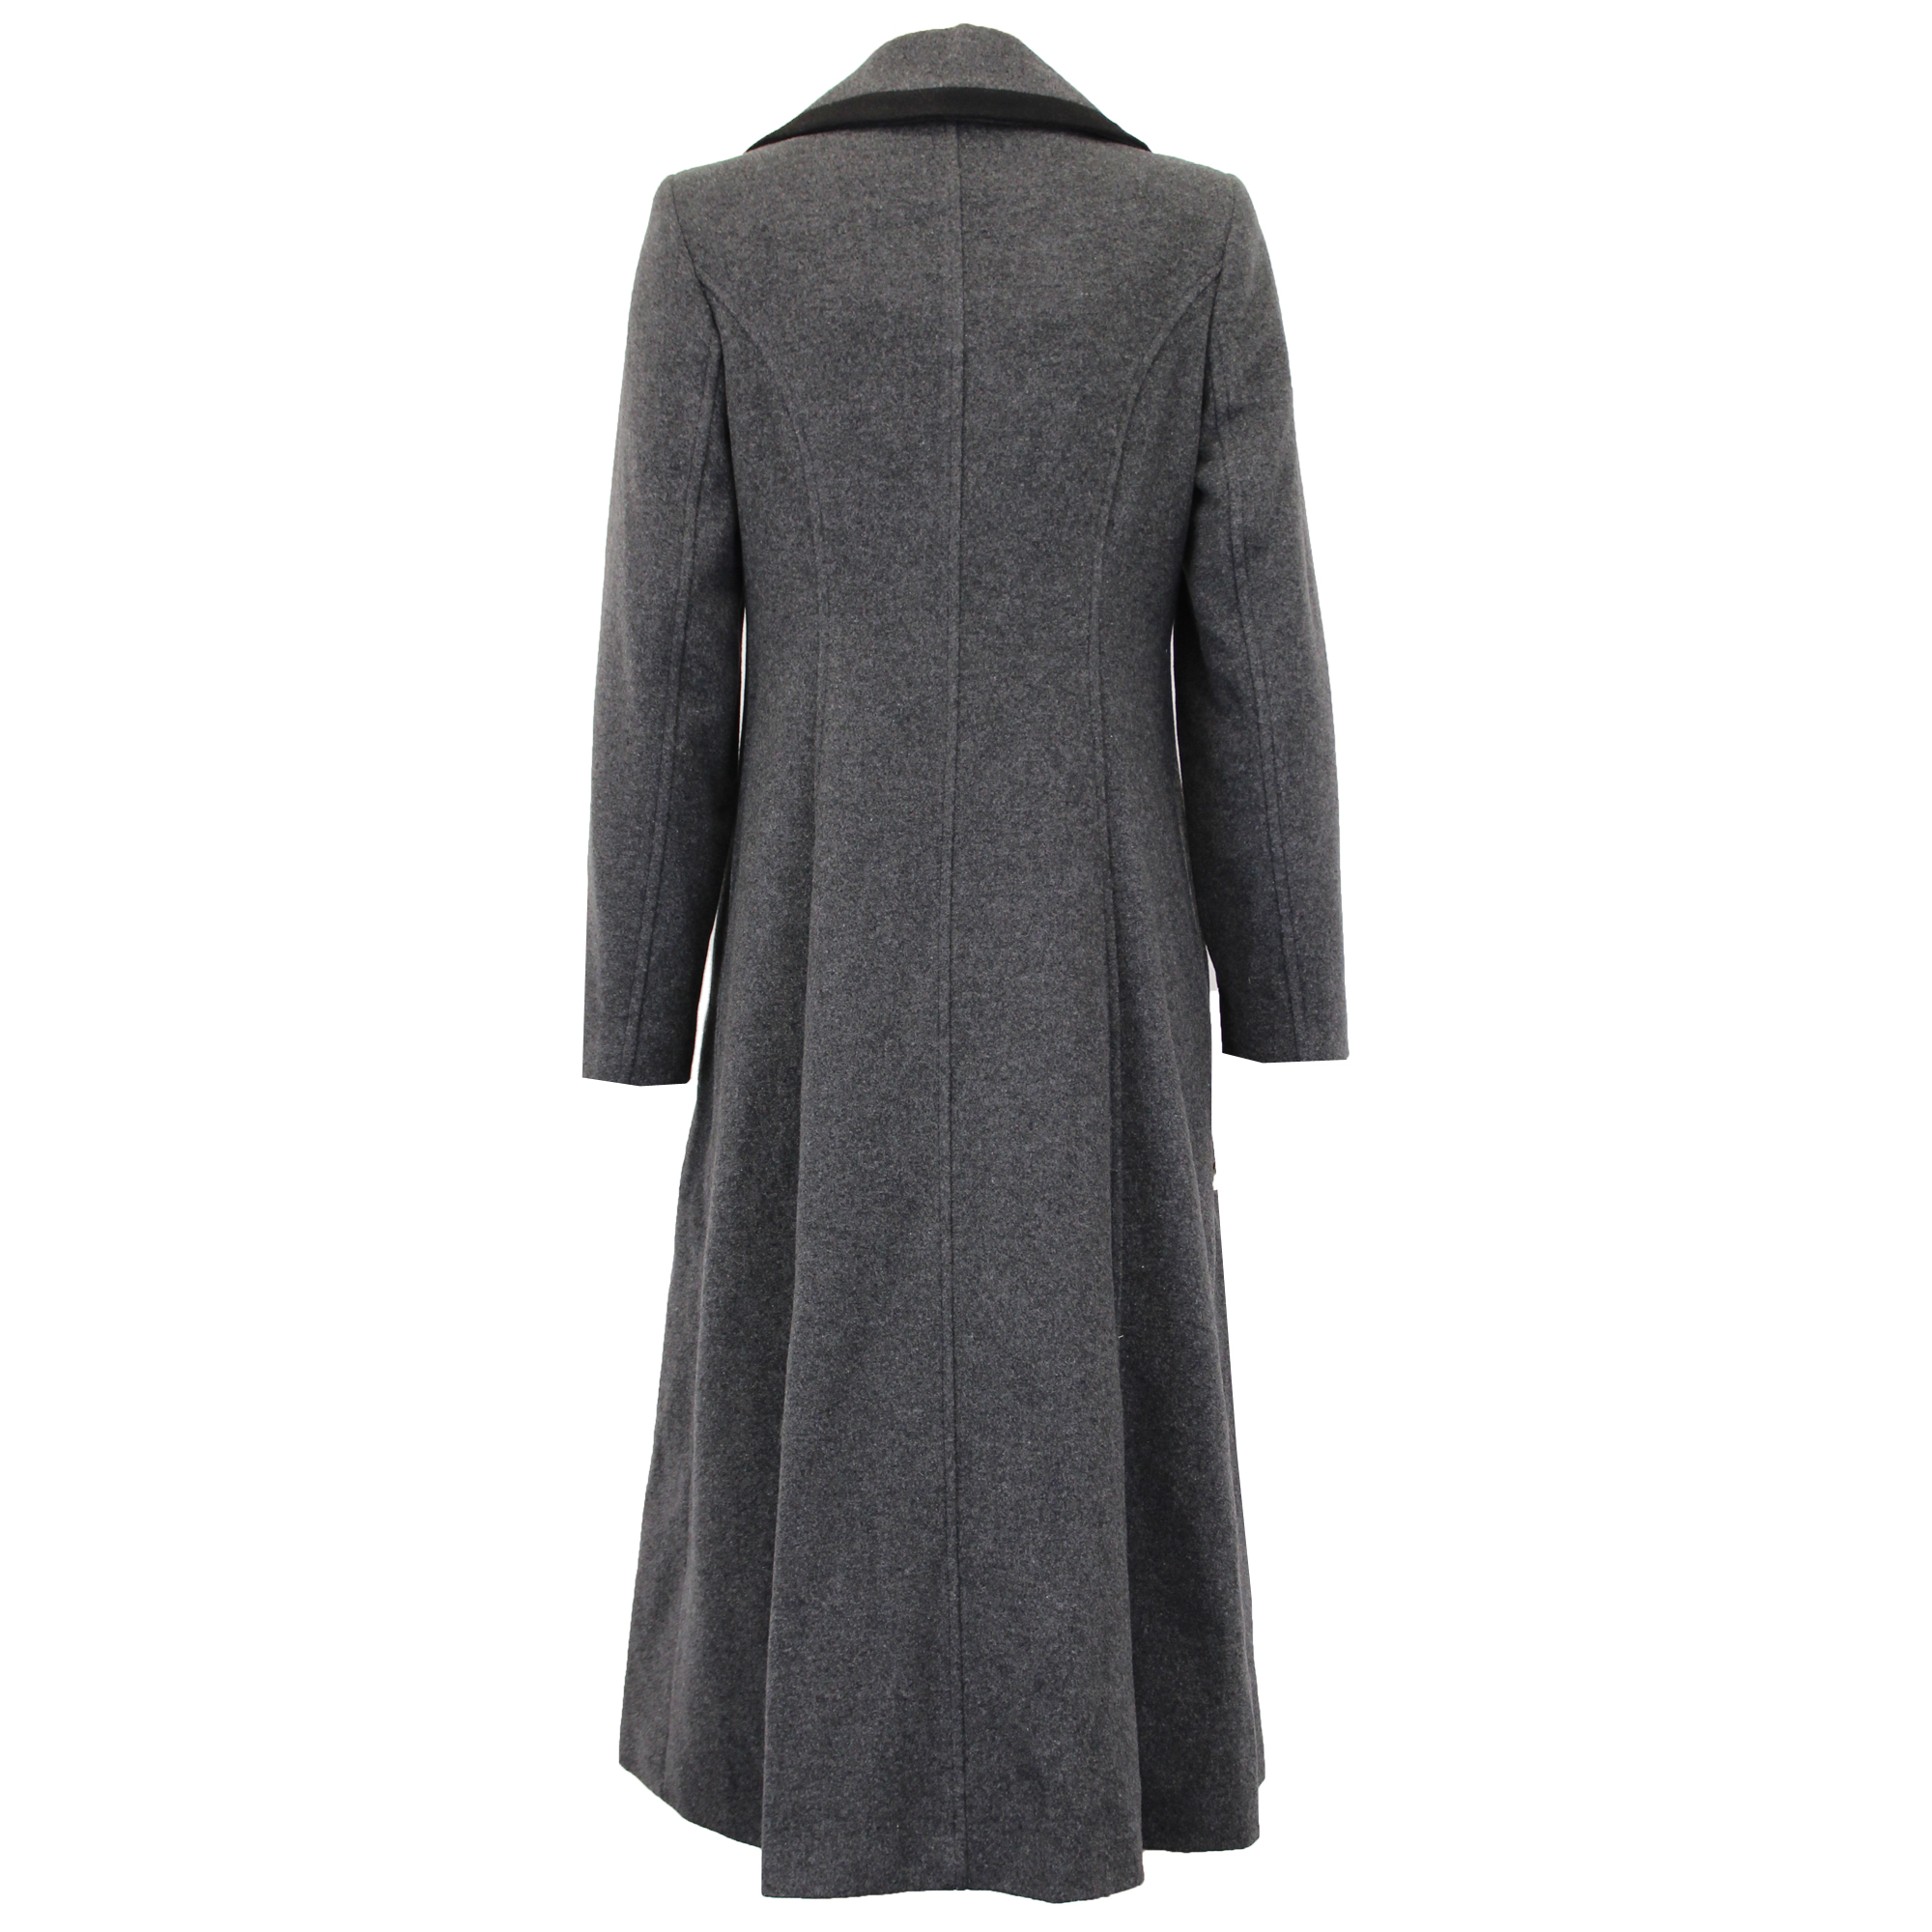 Ladies-Wool-Cashmere-Coat-Women-Jacket-Outerwear-Trench-Overcoat-Winter-Lined thumbnail 46